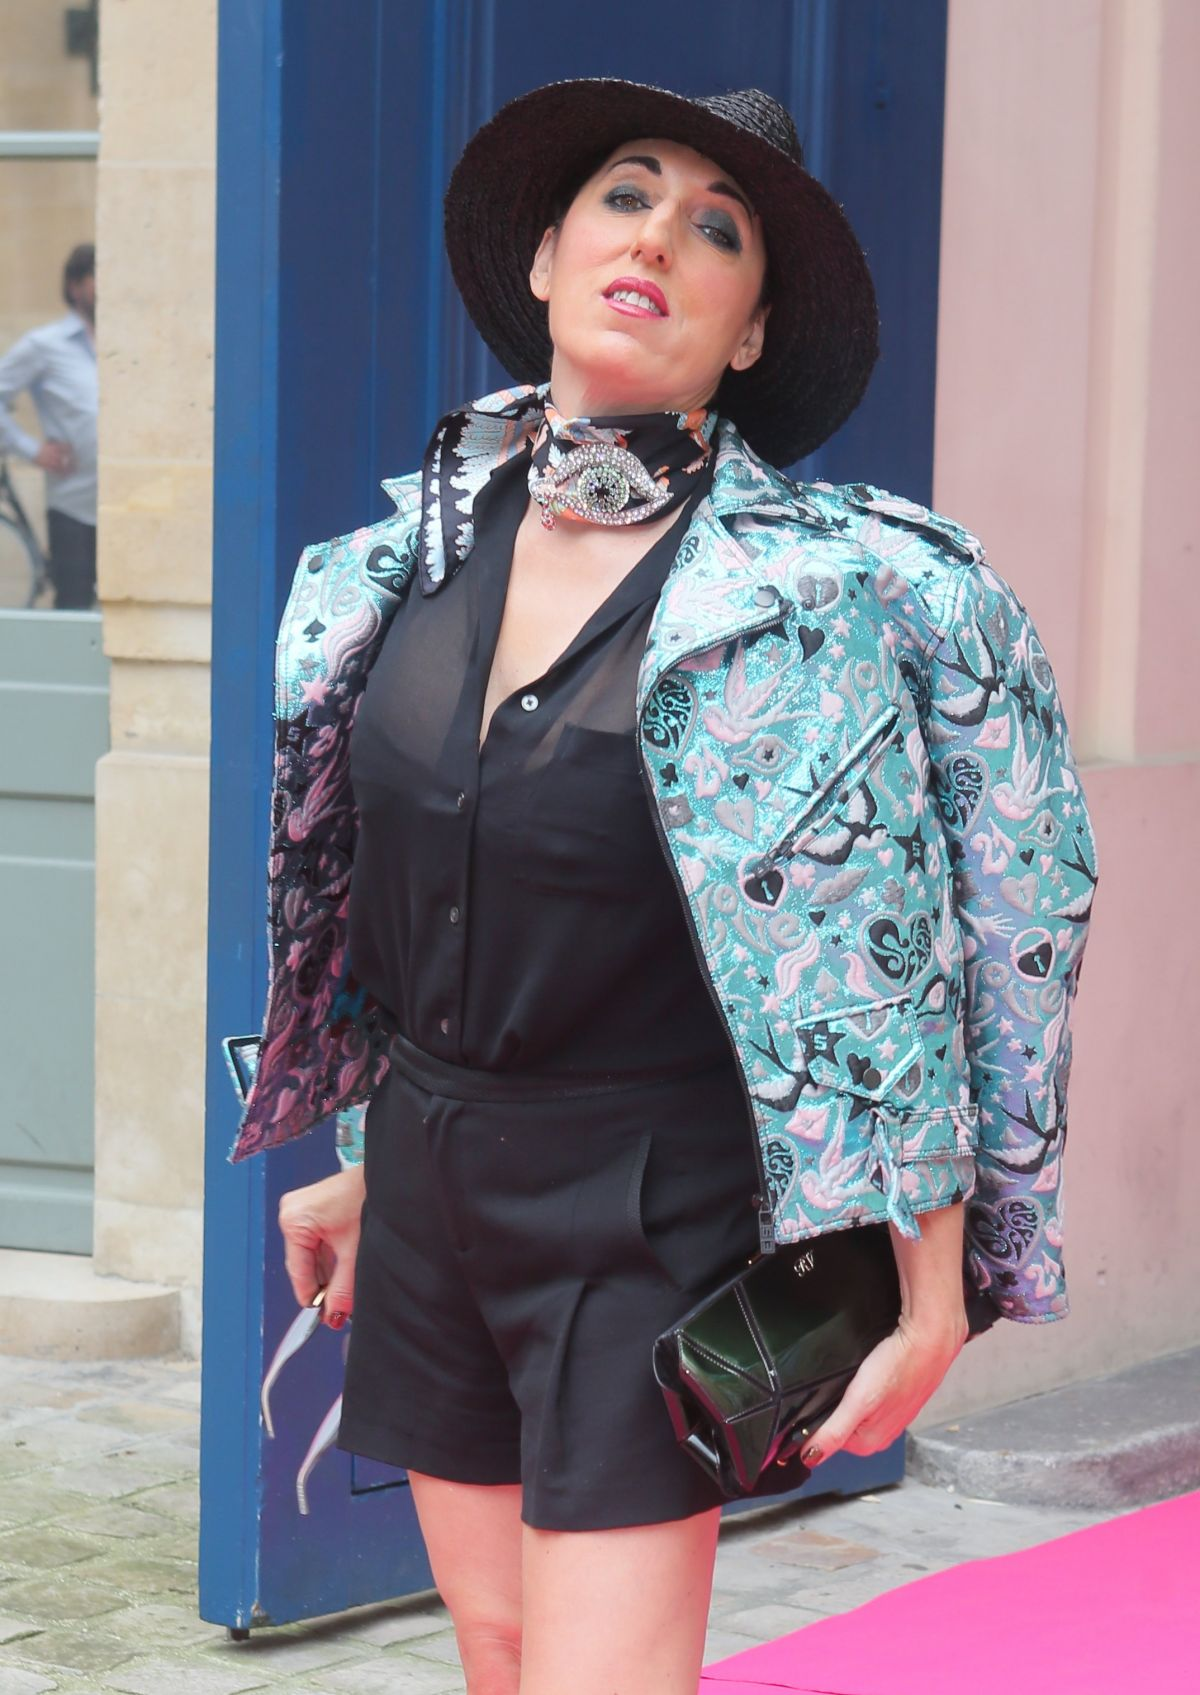 ROSSY DE PALMA at Schiaparelli Haute-couture Fashion Show in Paris 07/04/2016